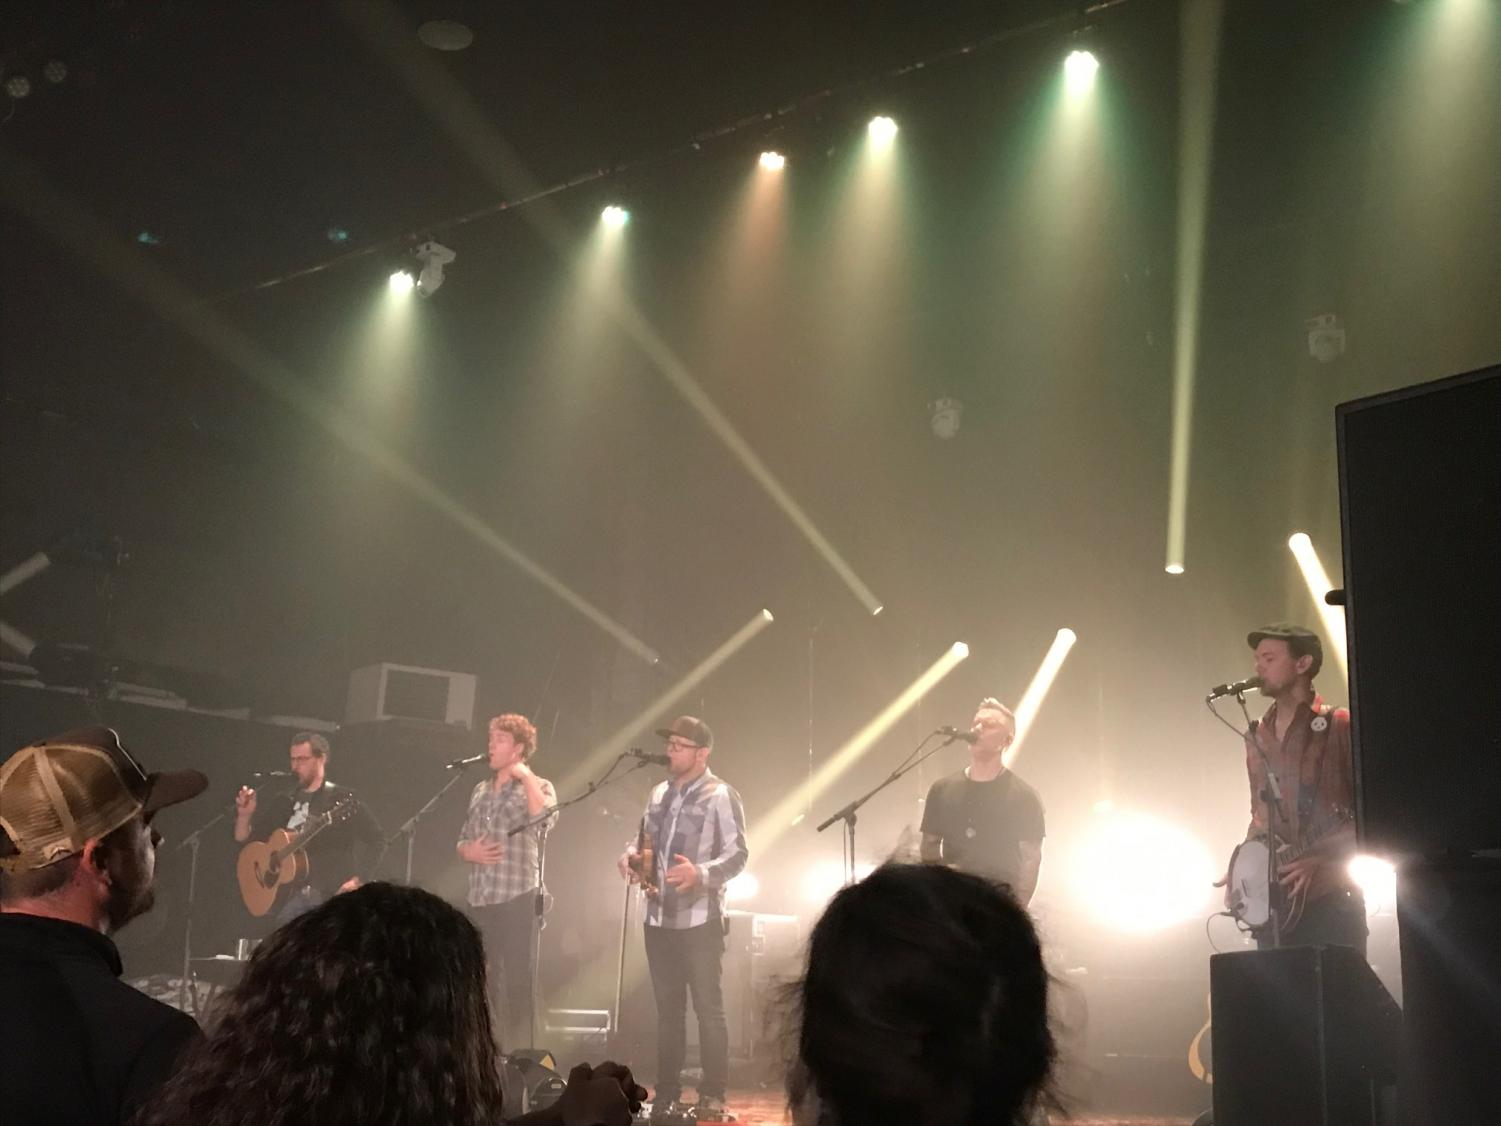 Grammy award-winning bluegrass band, the Infamous Stringdusters played at the Senator on Wednesday, January 22.